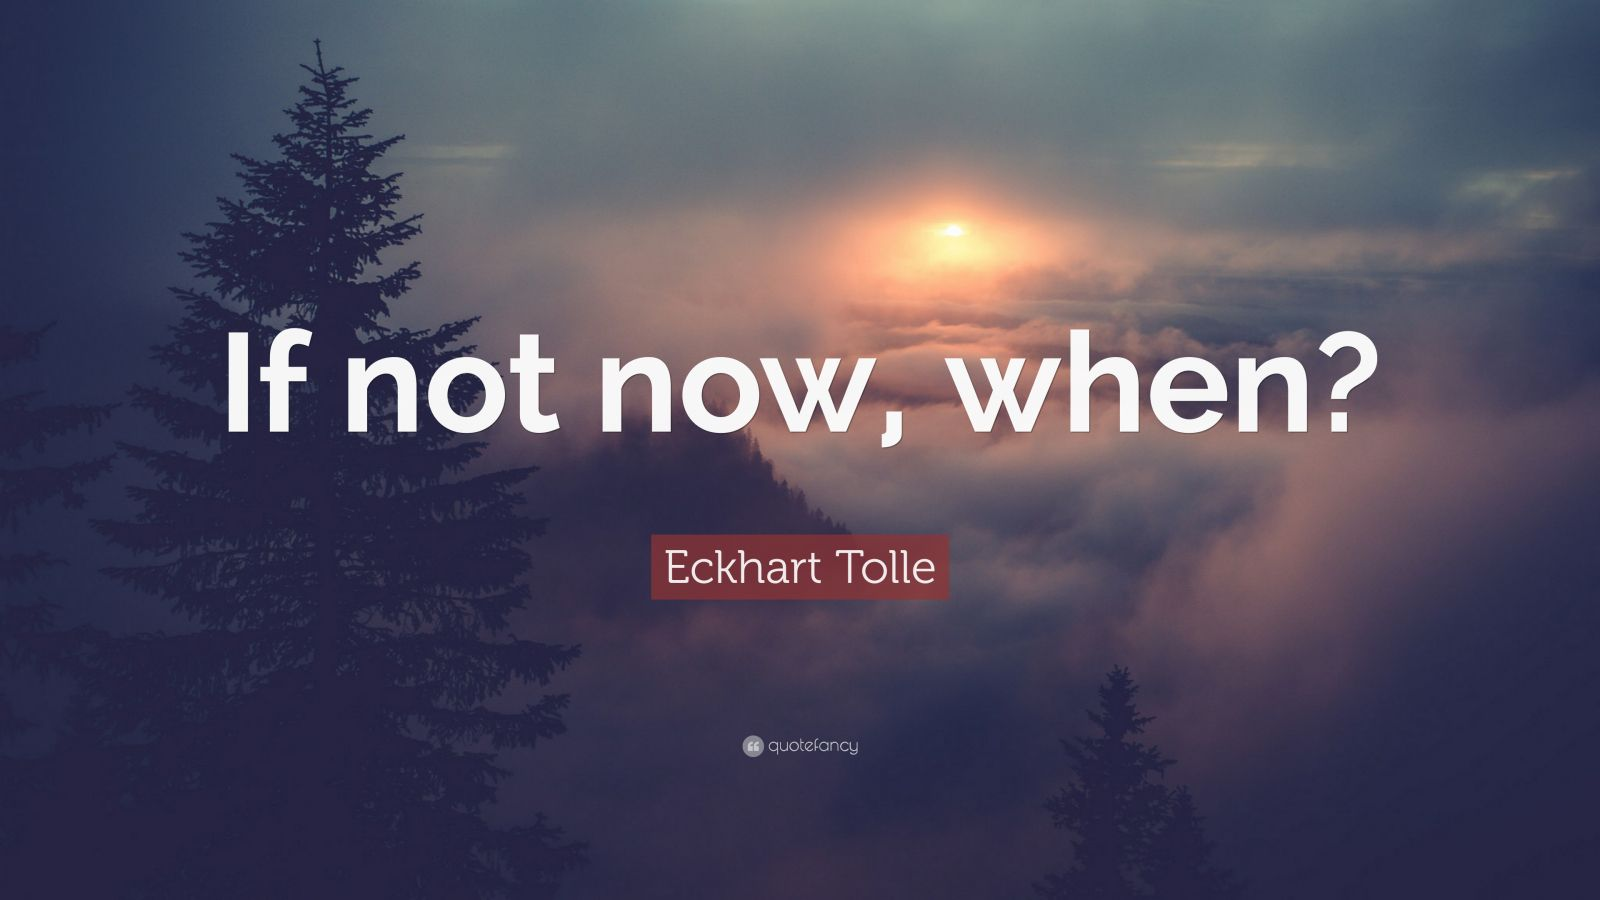 Love Inspiring Quotes Wallpaper Eckhart Tolle Quote If Not Now When 23 Wallpapers